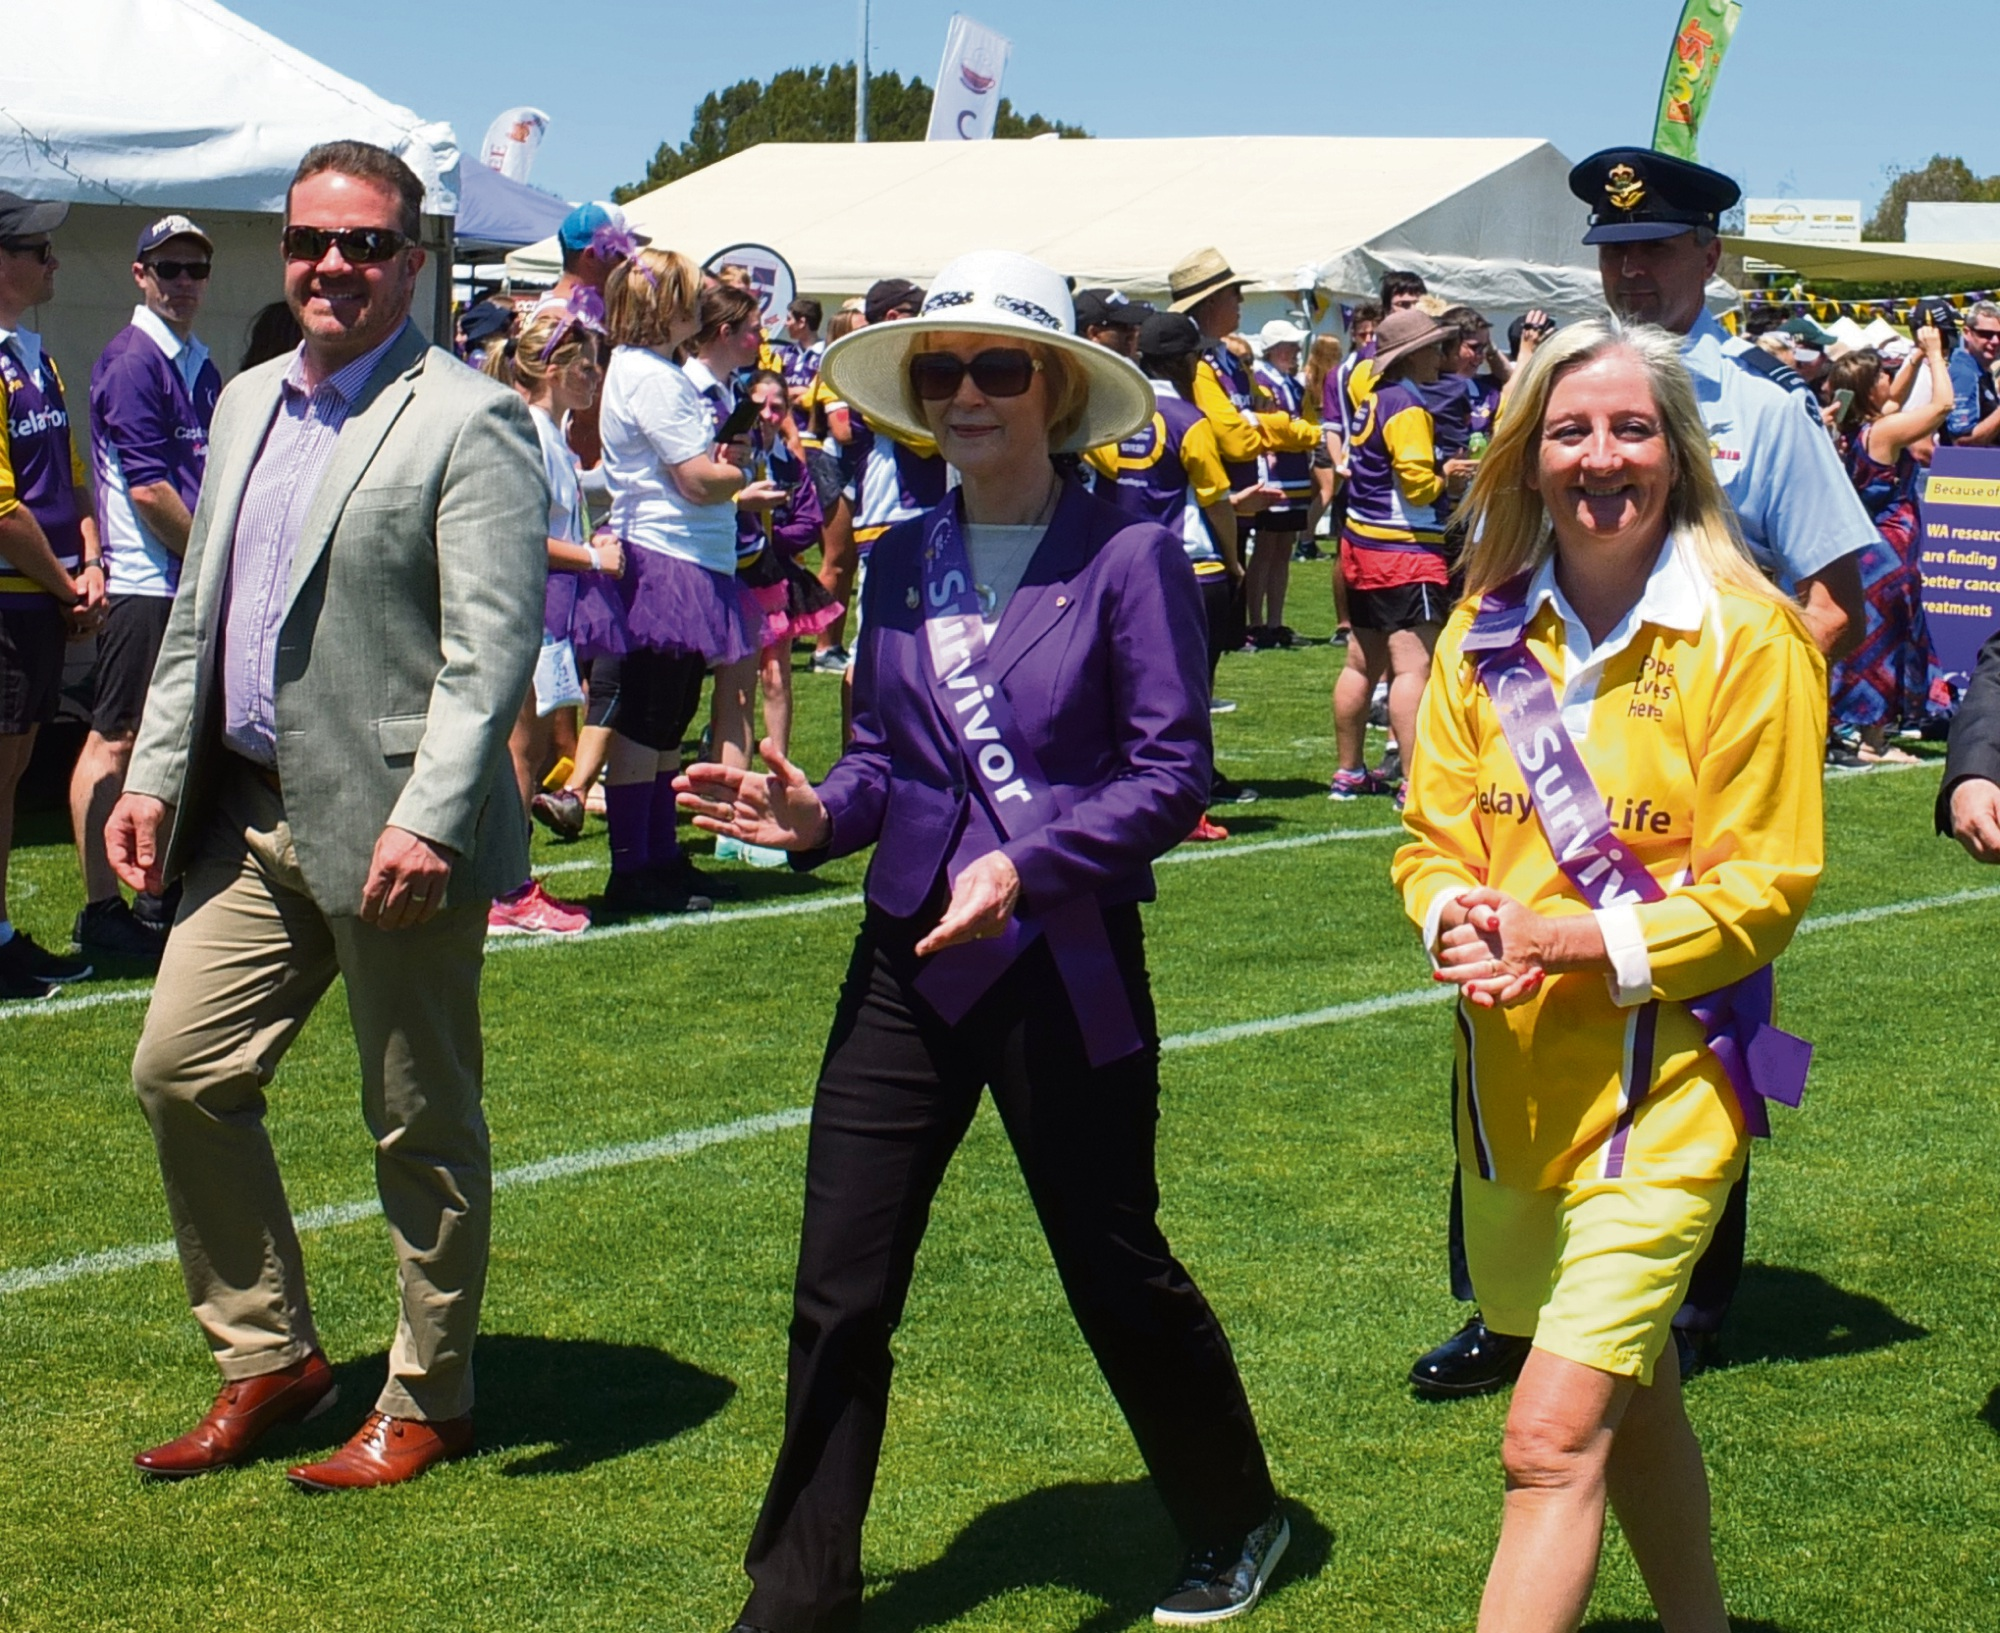 Relay for Life Joondalup Wanneroo raises more than $305,000 for Cancer Council